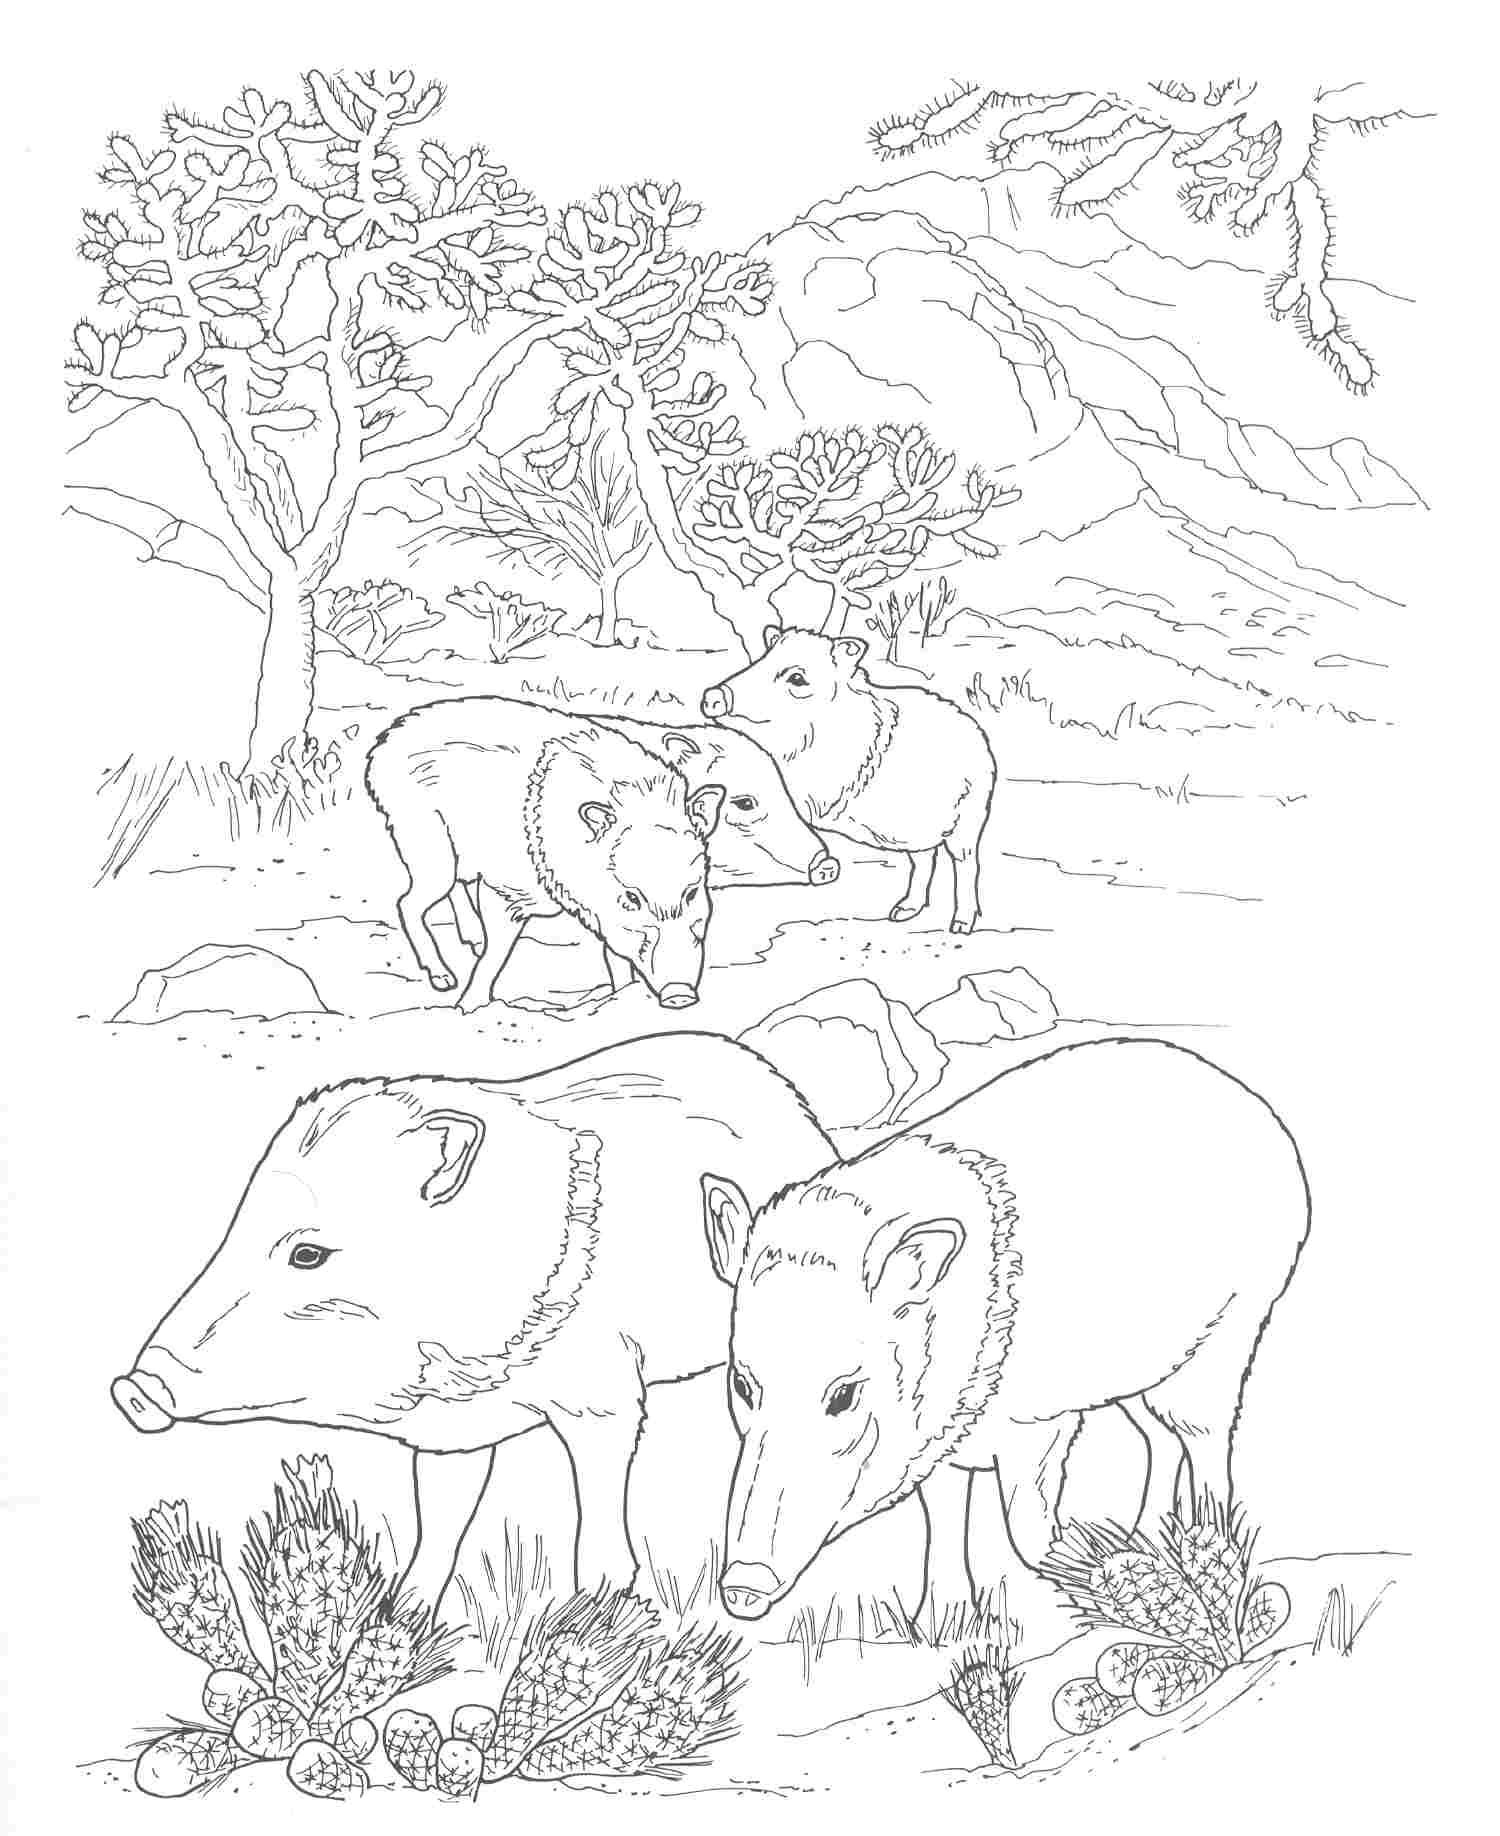 2b1660c5a7246d36_Animals-Coloring-Pages-Peccary